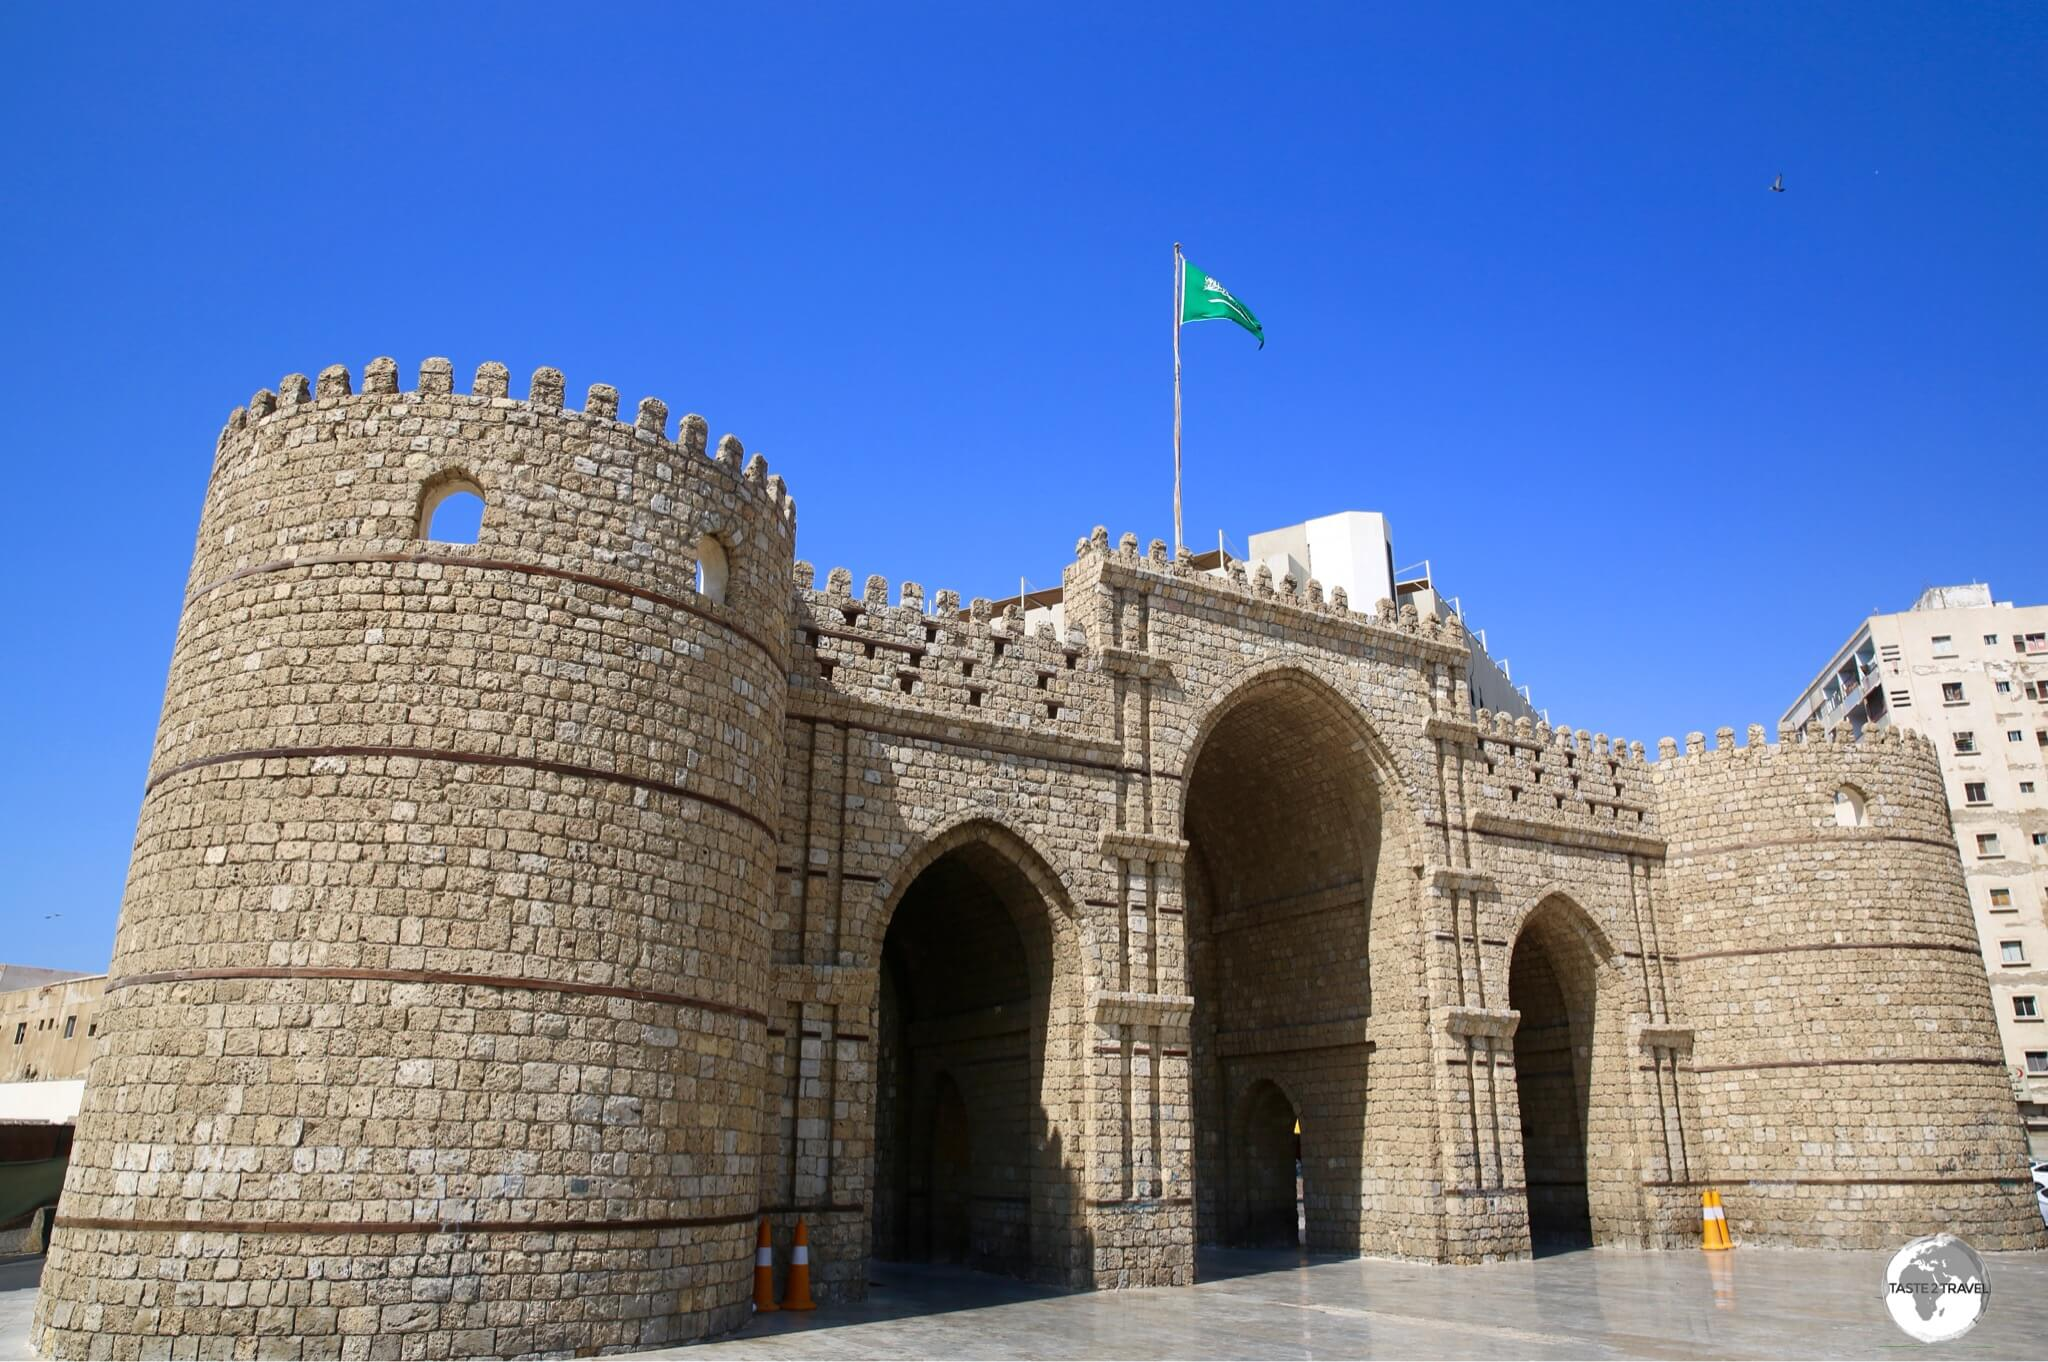 One of the gates of Al-Balad, Bab Makkah (Mecca gate) marks the start of the road to the holy city of Mecca.